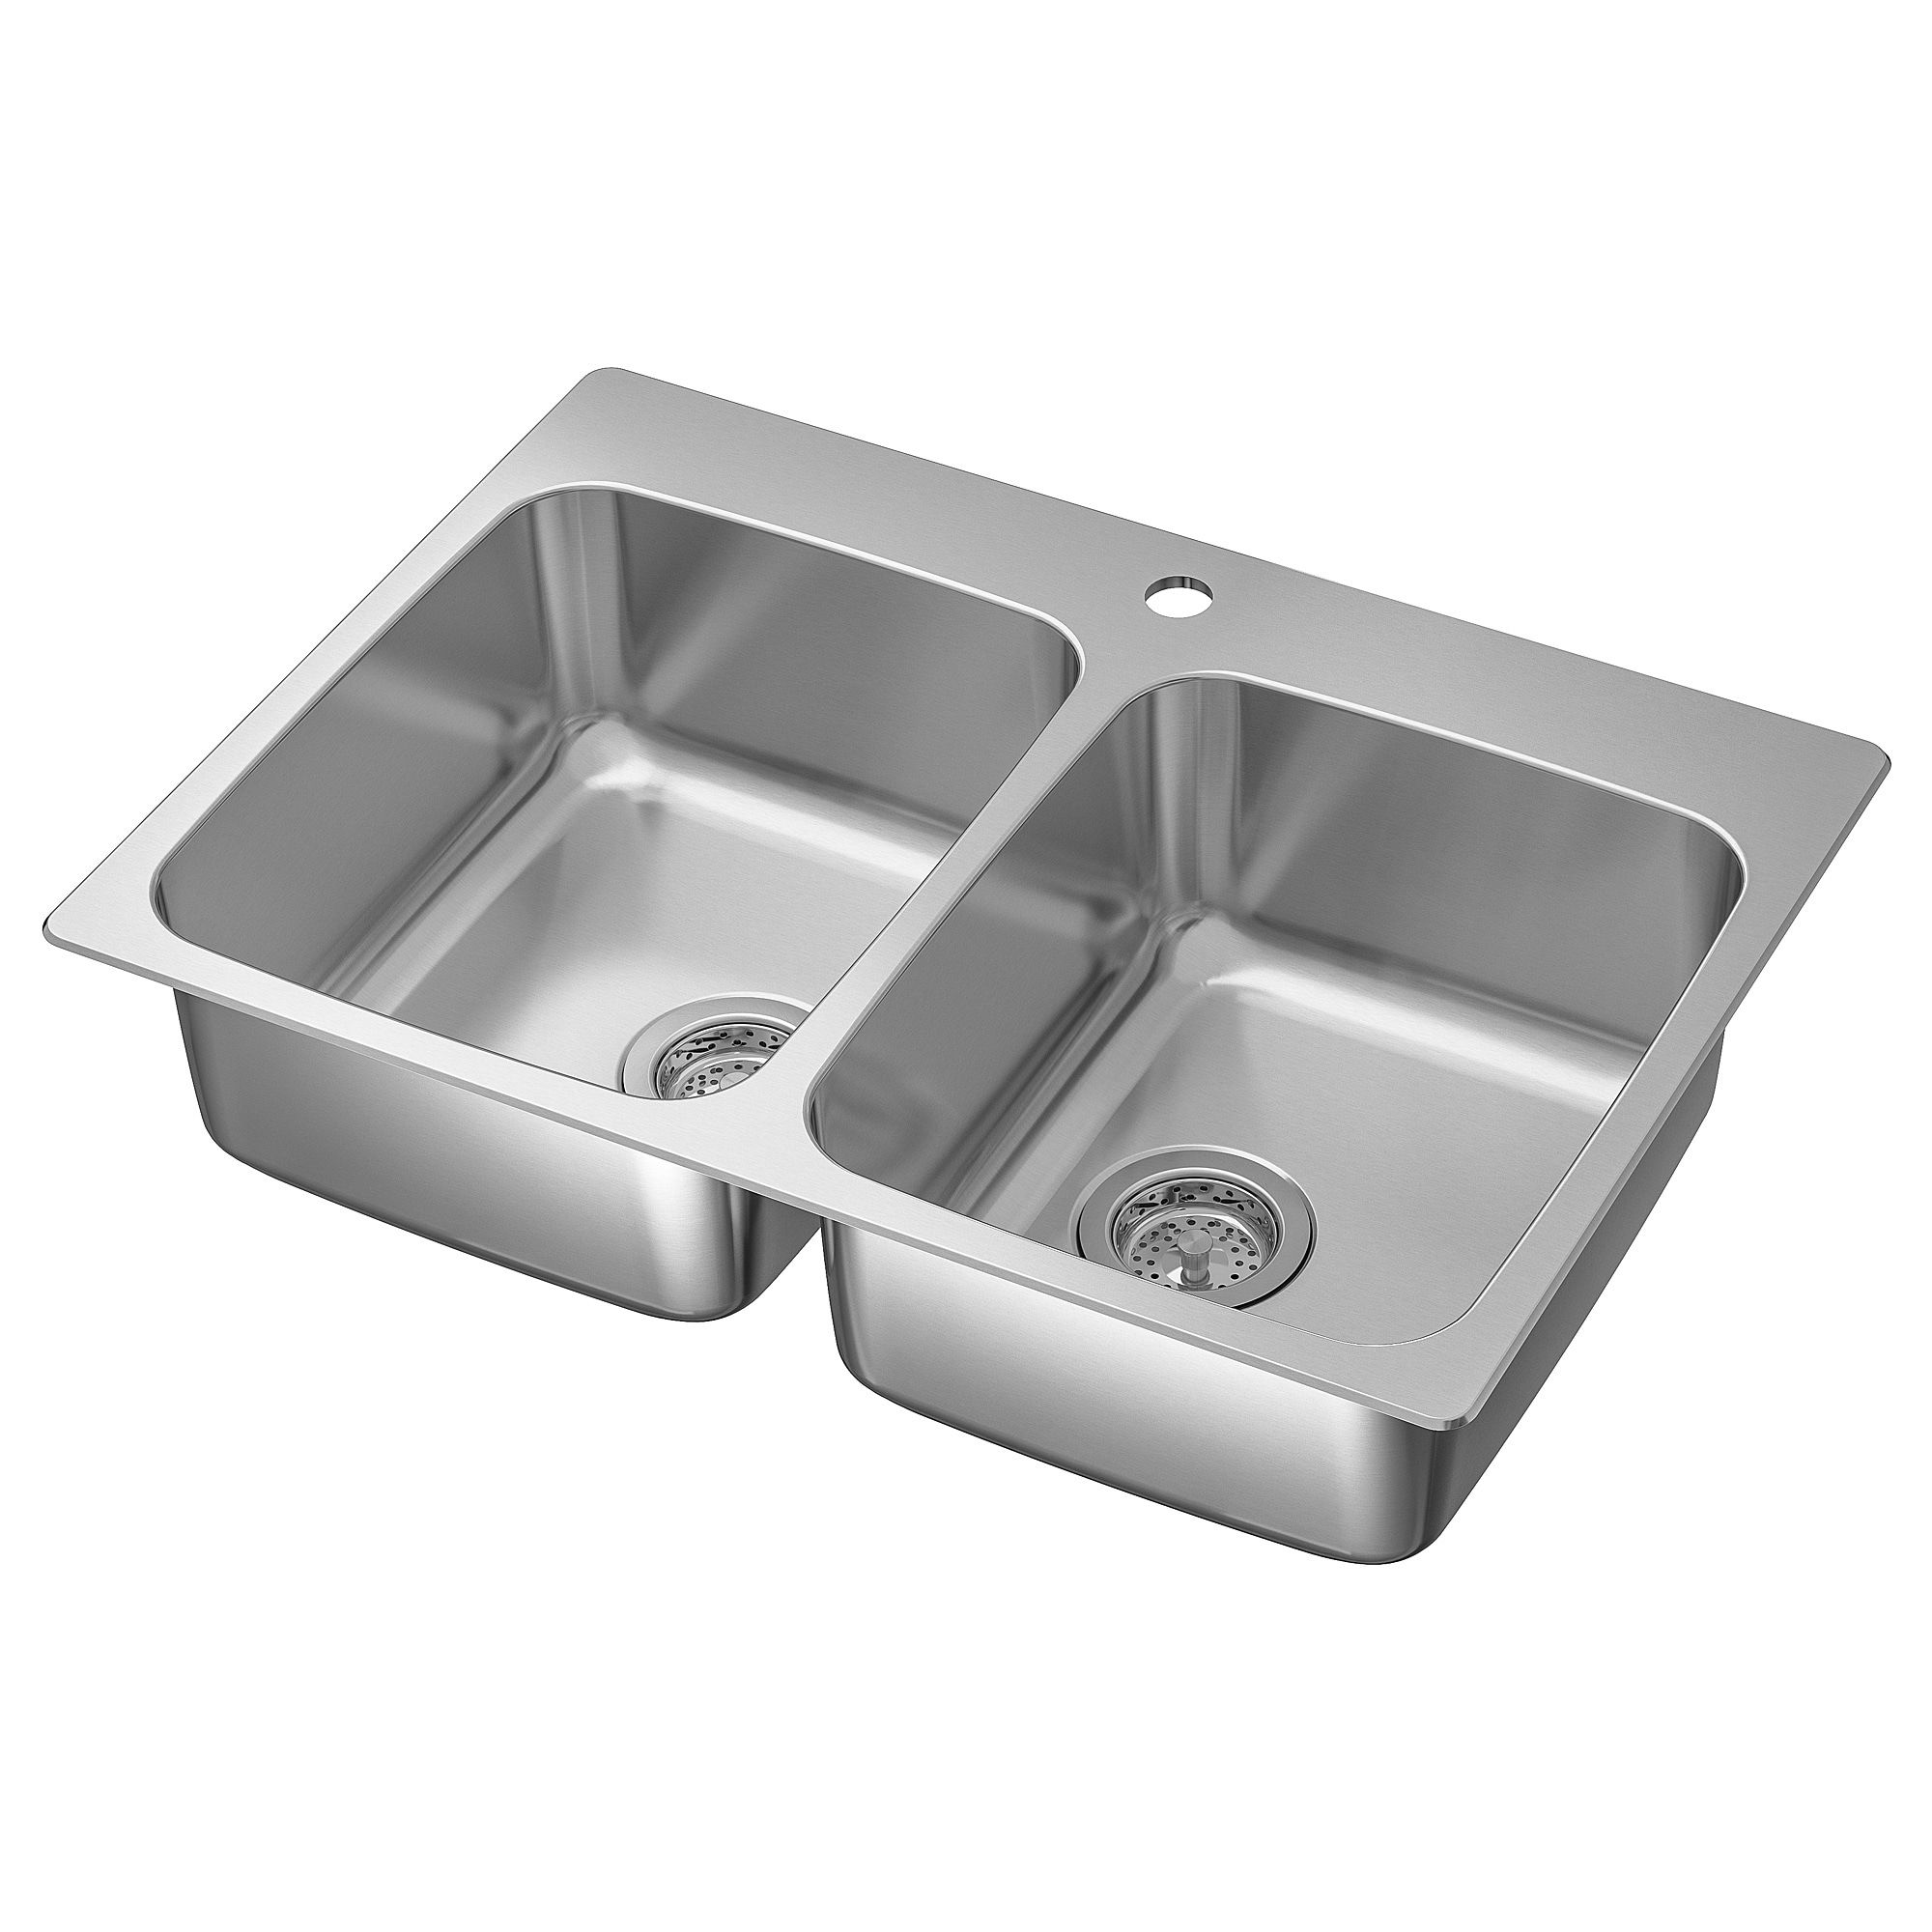 Langudden Double Bowl Top Mount Sink Stainless Steel 29 1 2x20 5